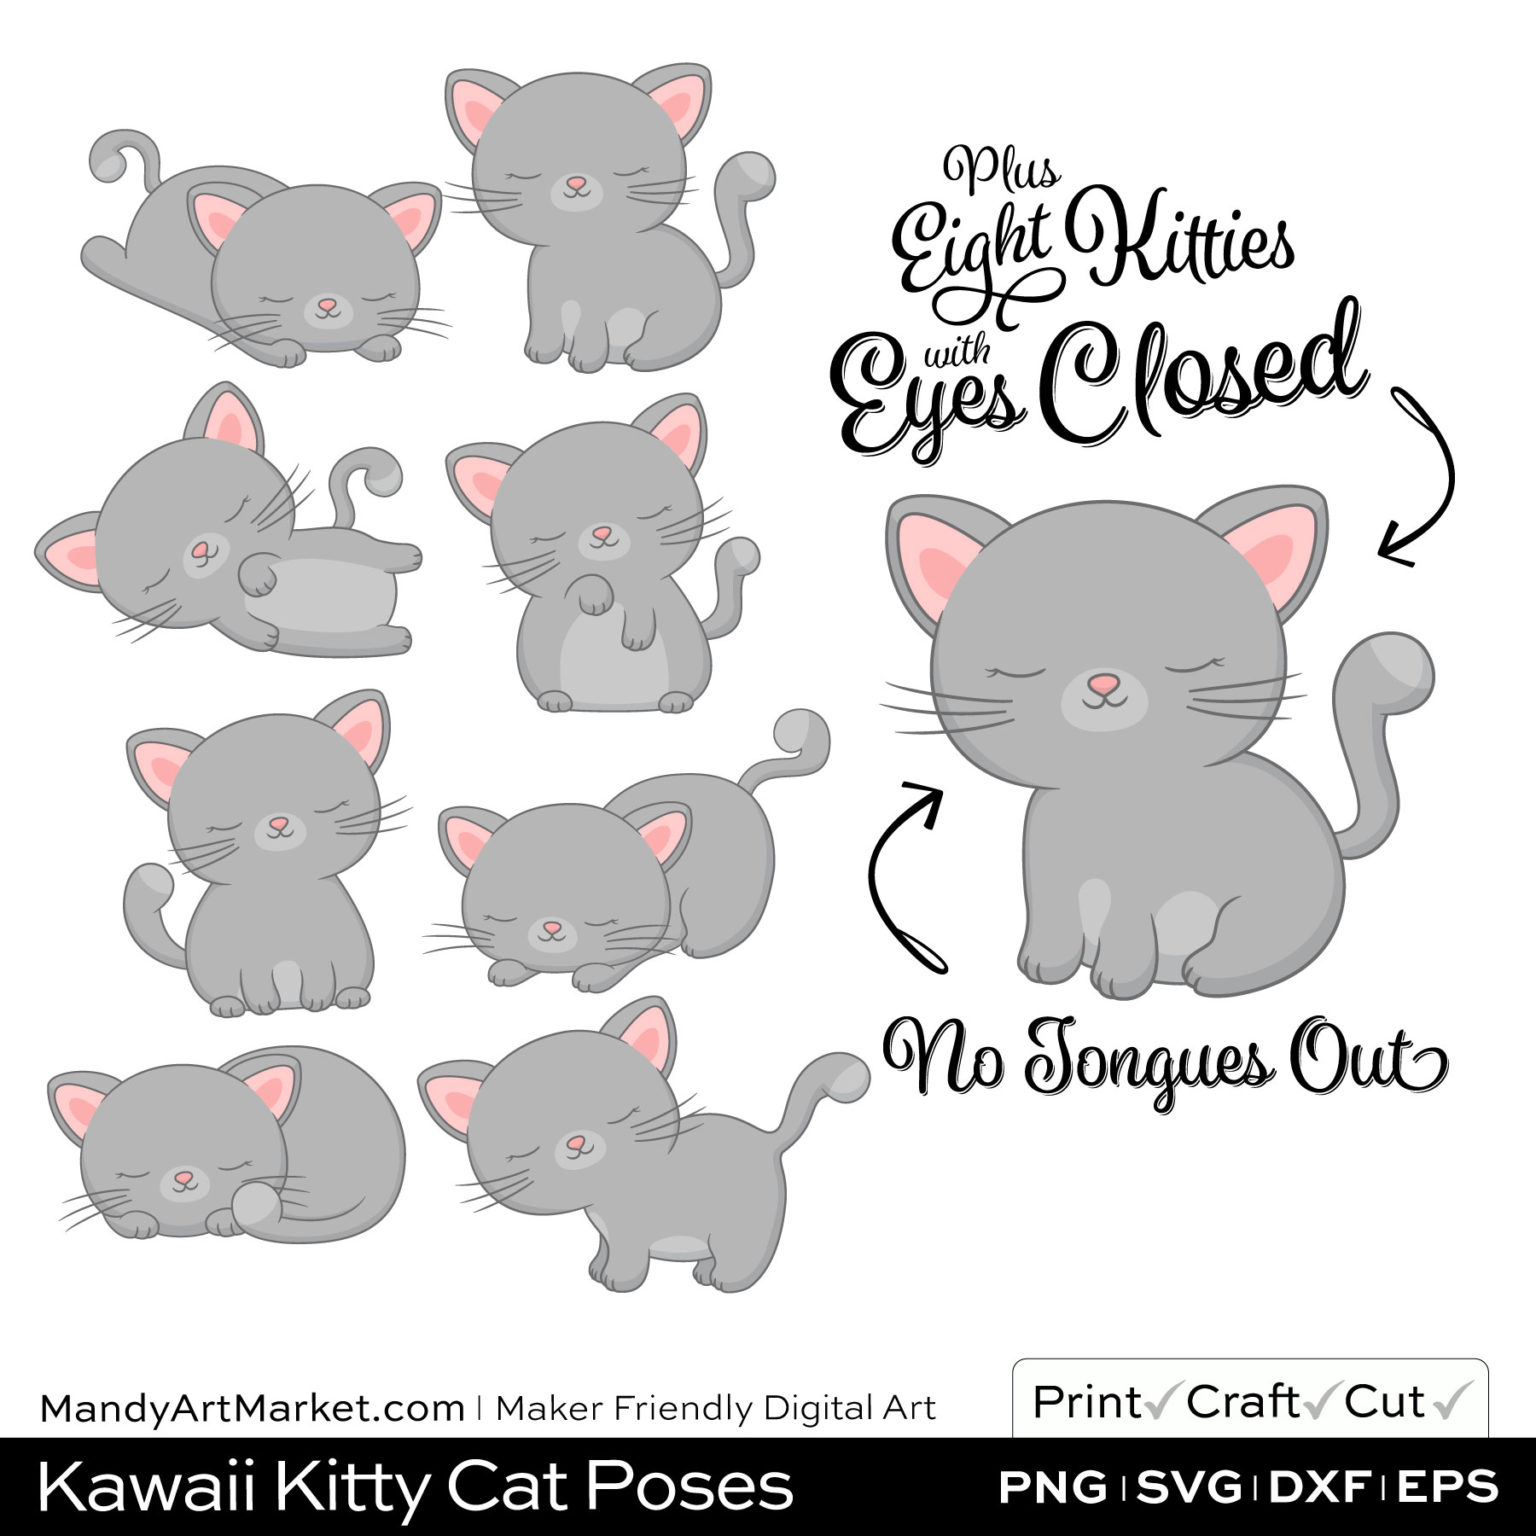 Silver Gray Kawaii Kitty Cat Poses Clipart PNGs Included in Download